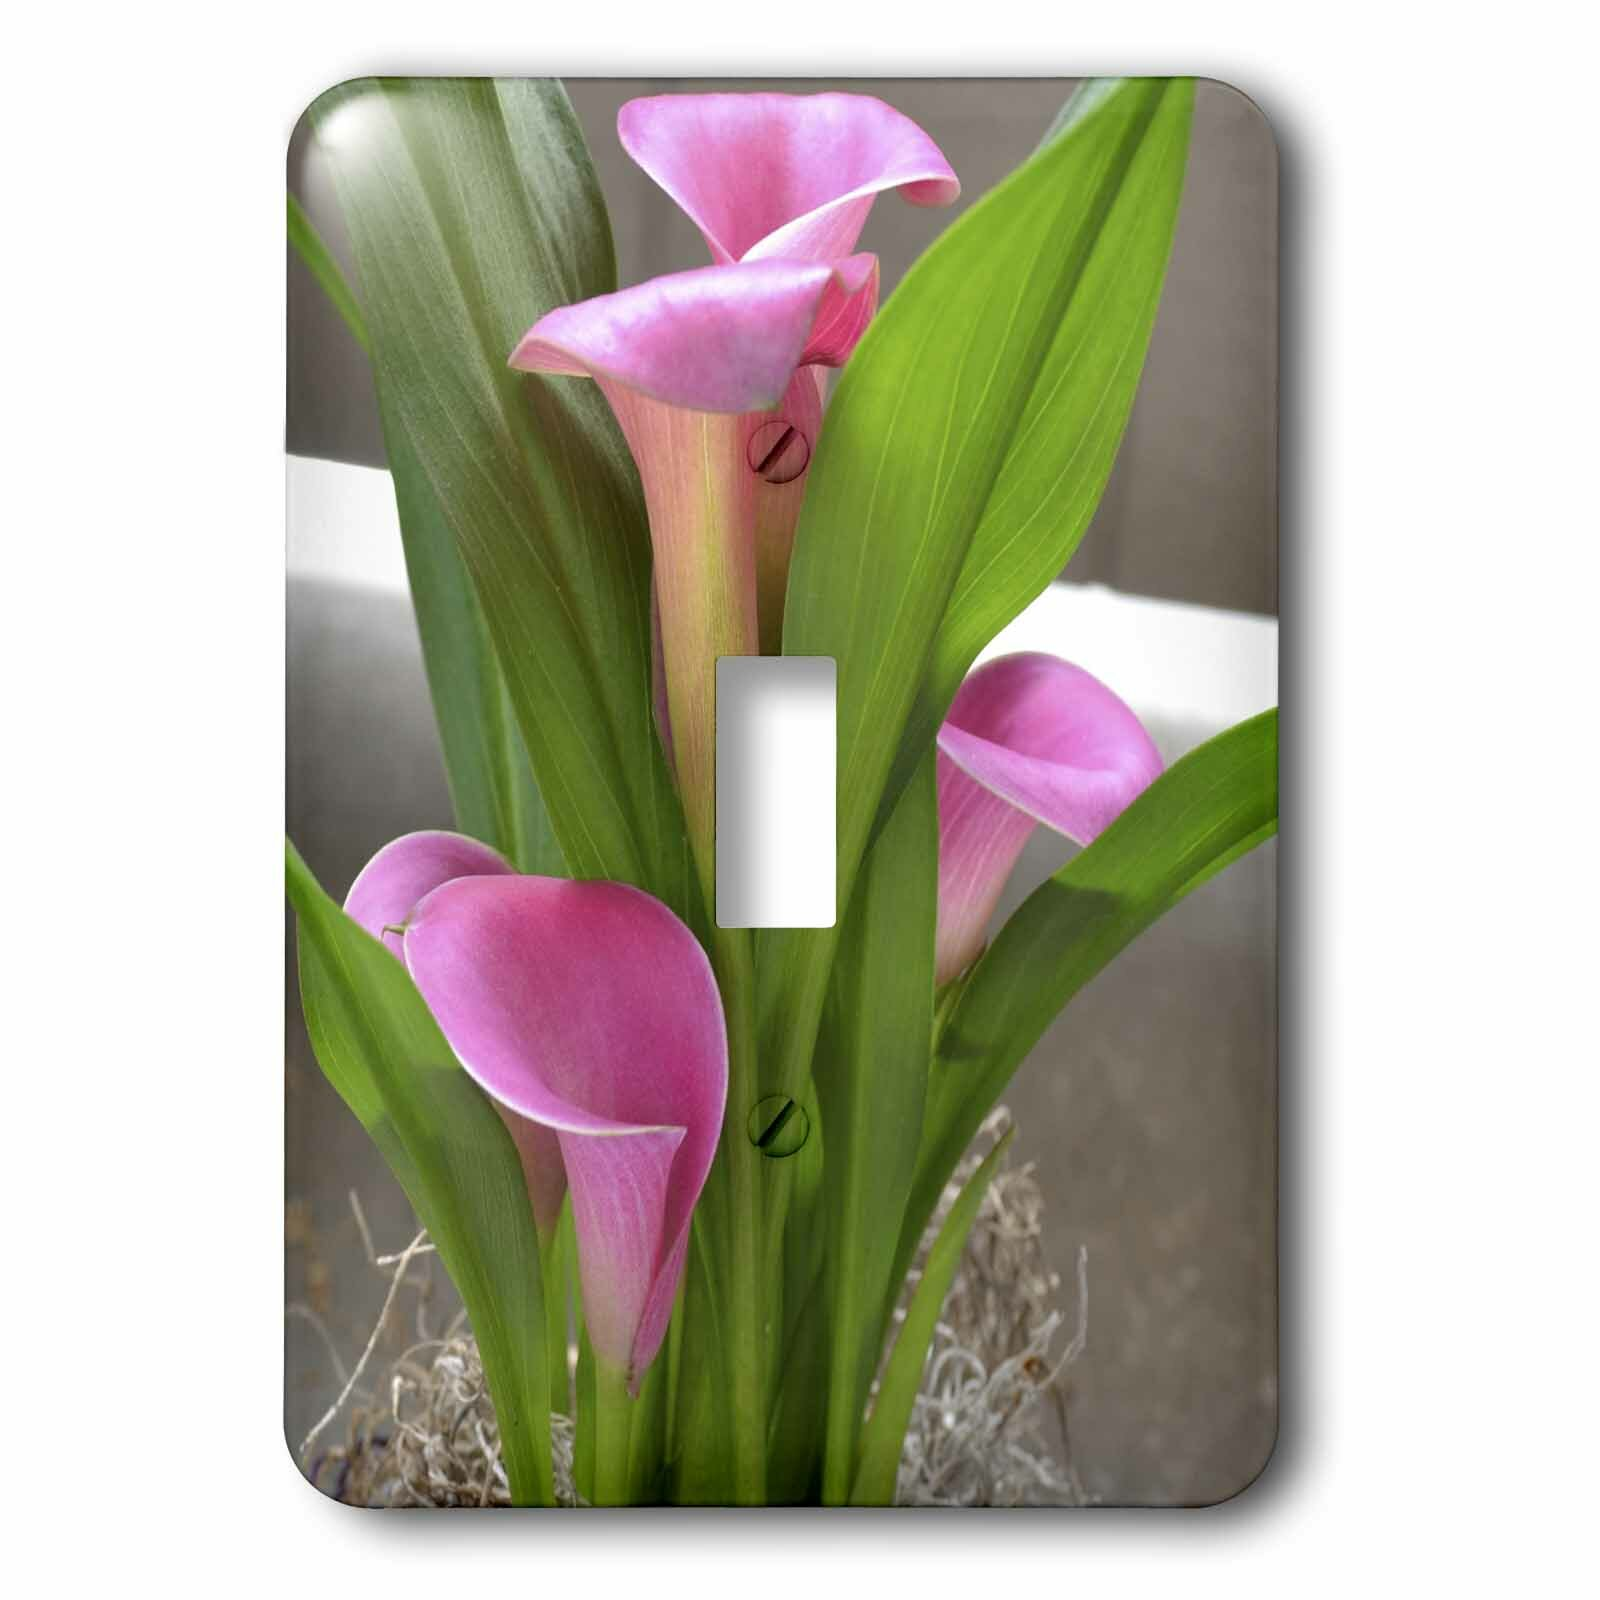 3drose Pretty Calla Lily Flowers 1 Gang Toggle Light Switch Wall Plate Wayfair